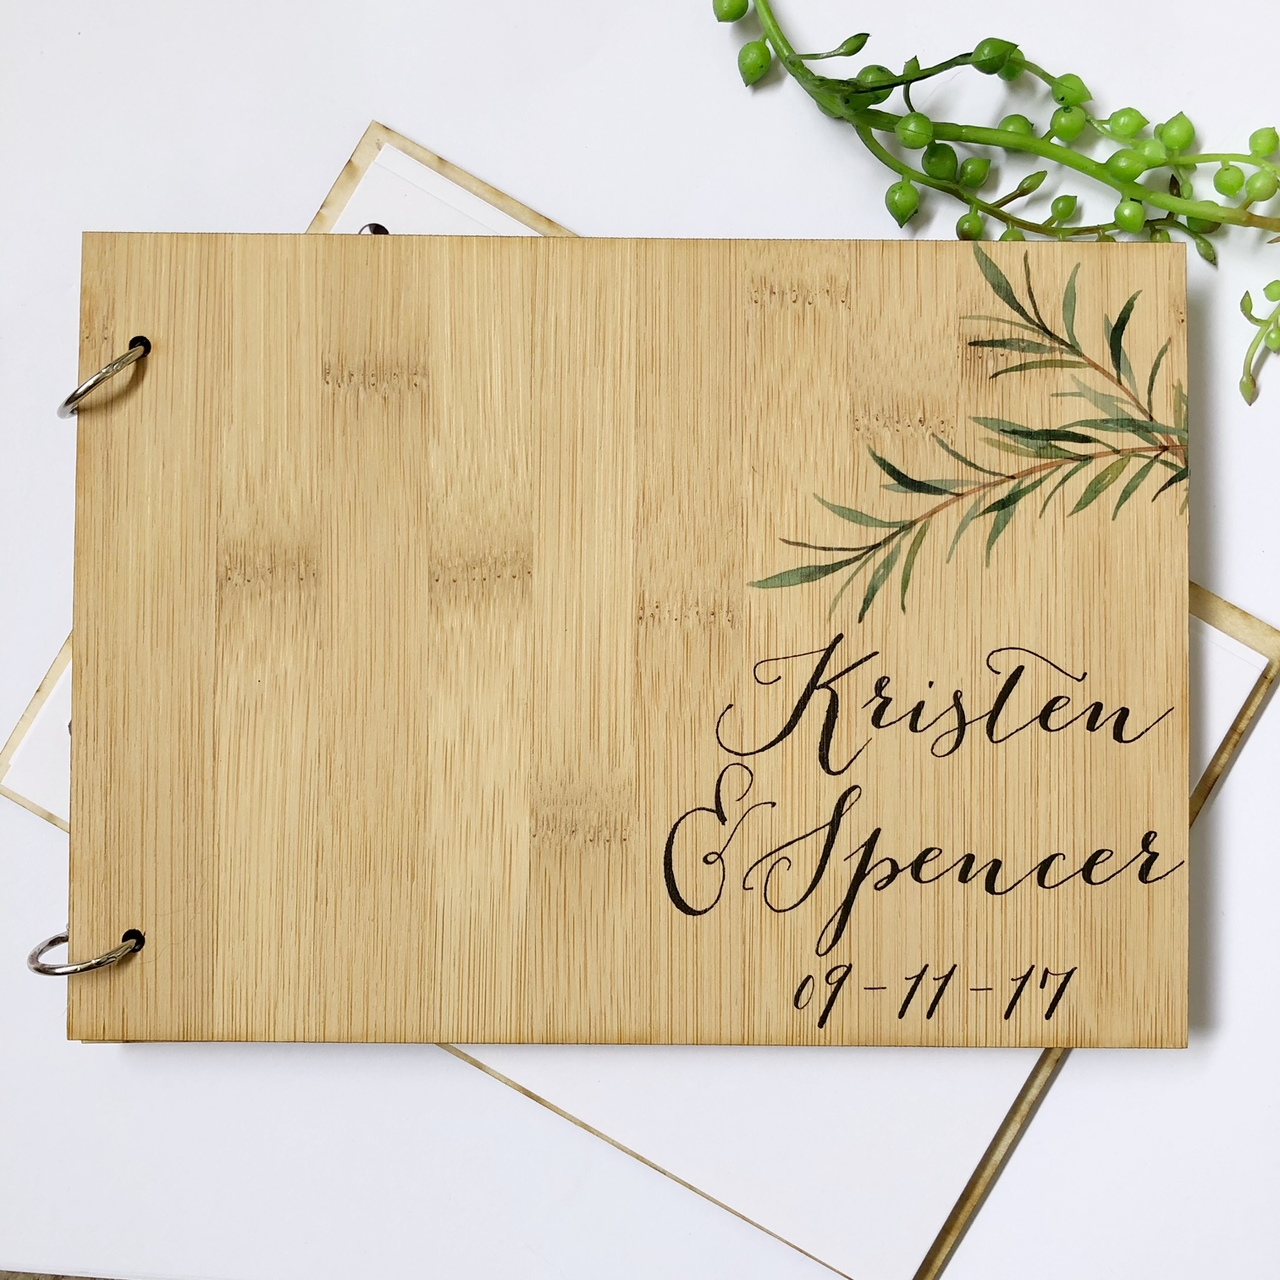 A guest book - personalised with olive branches